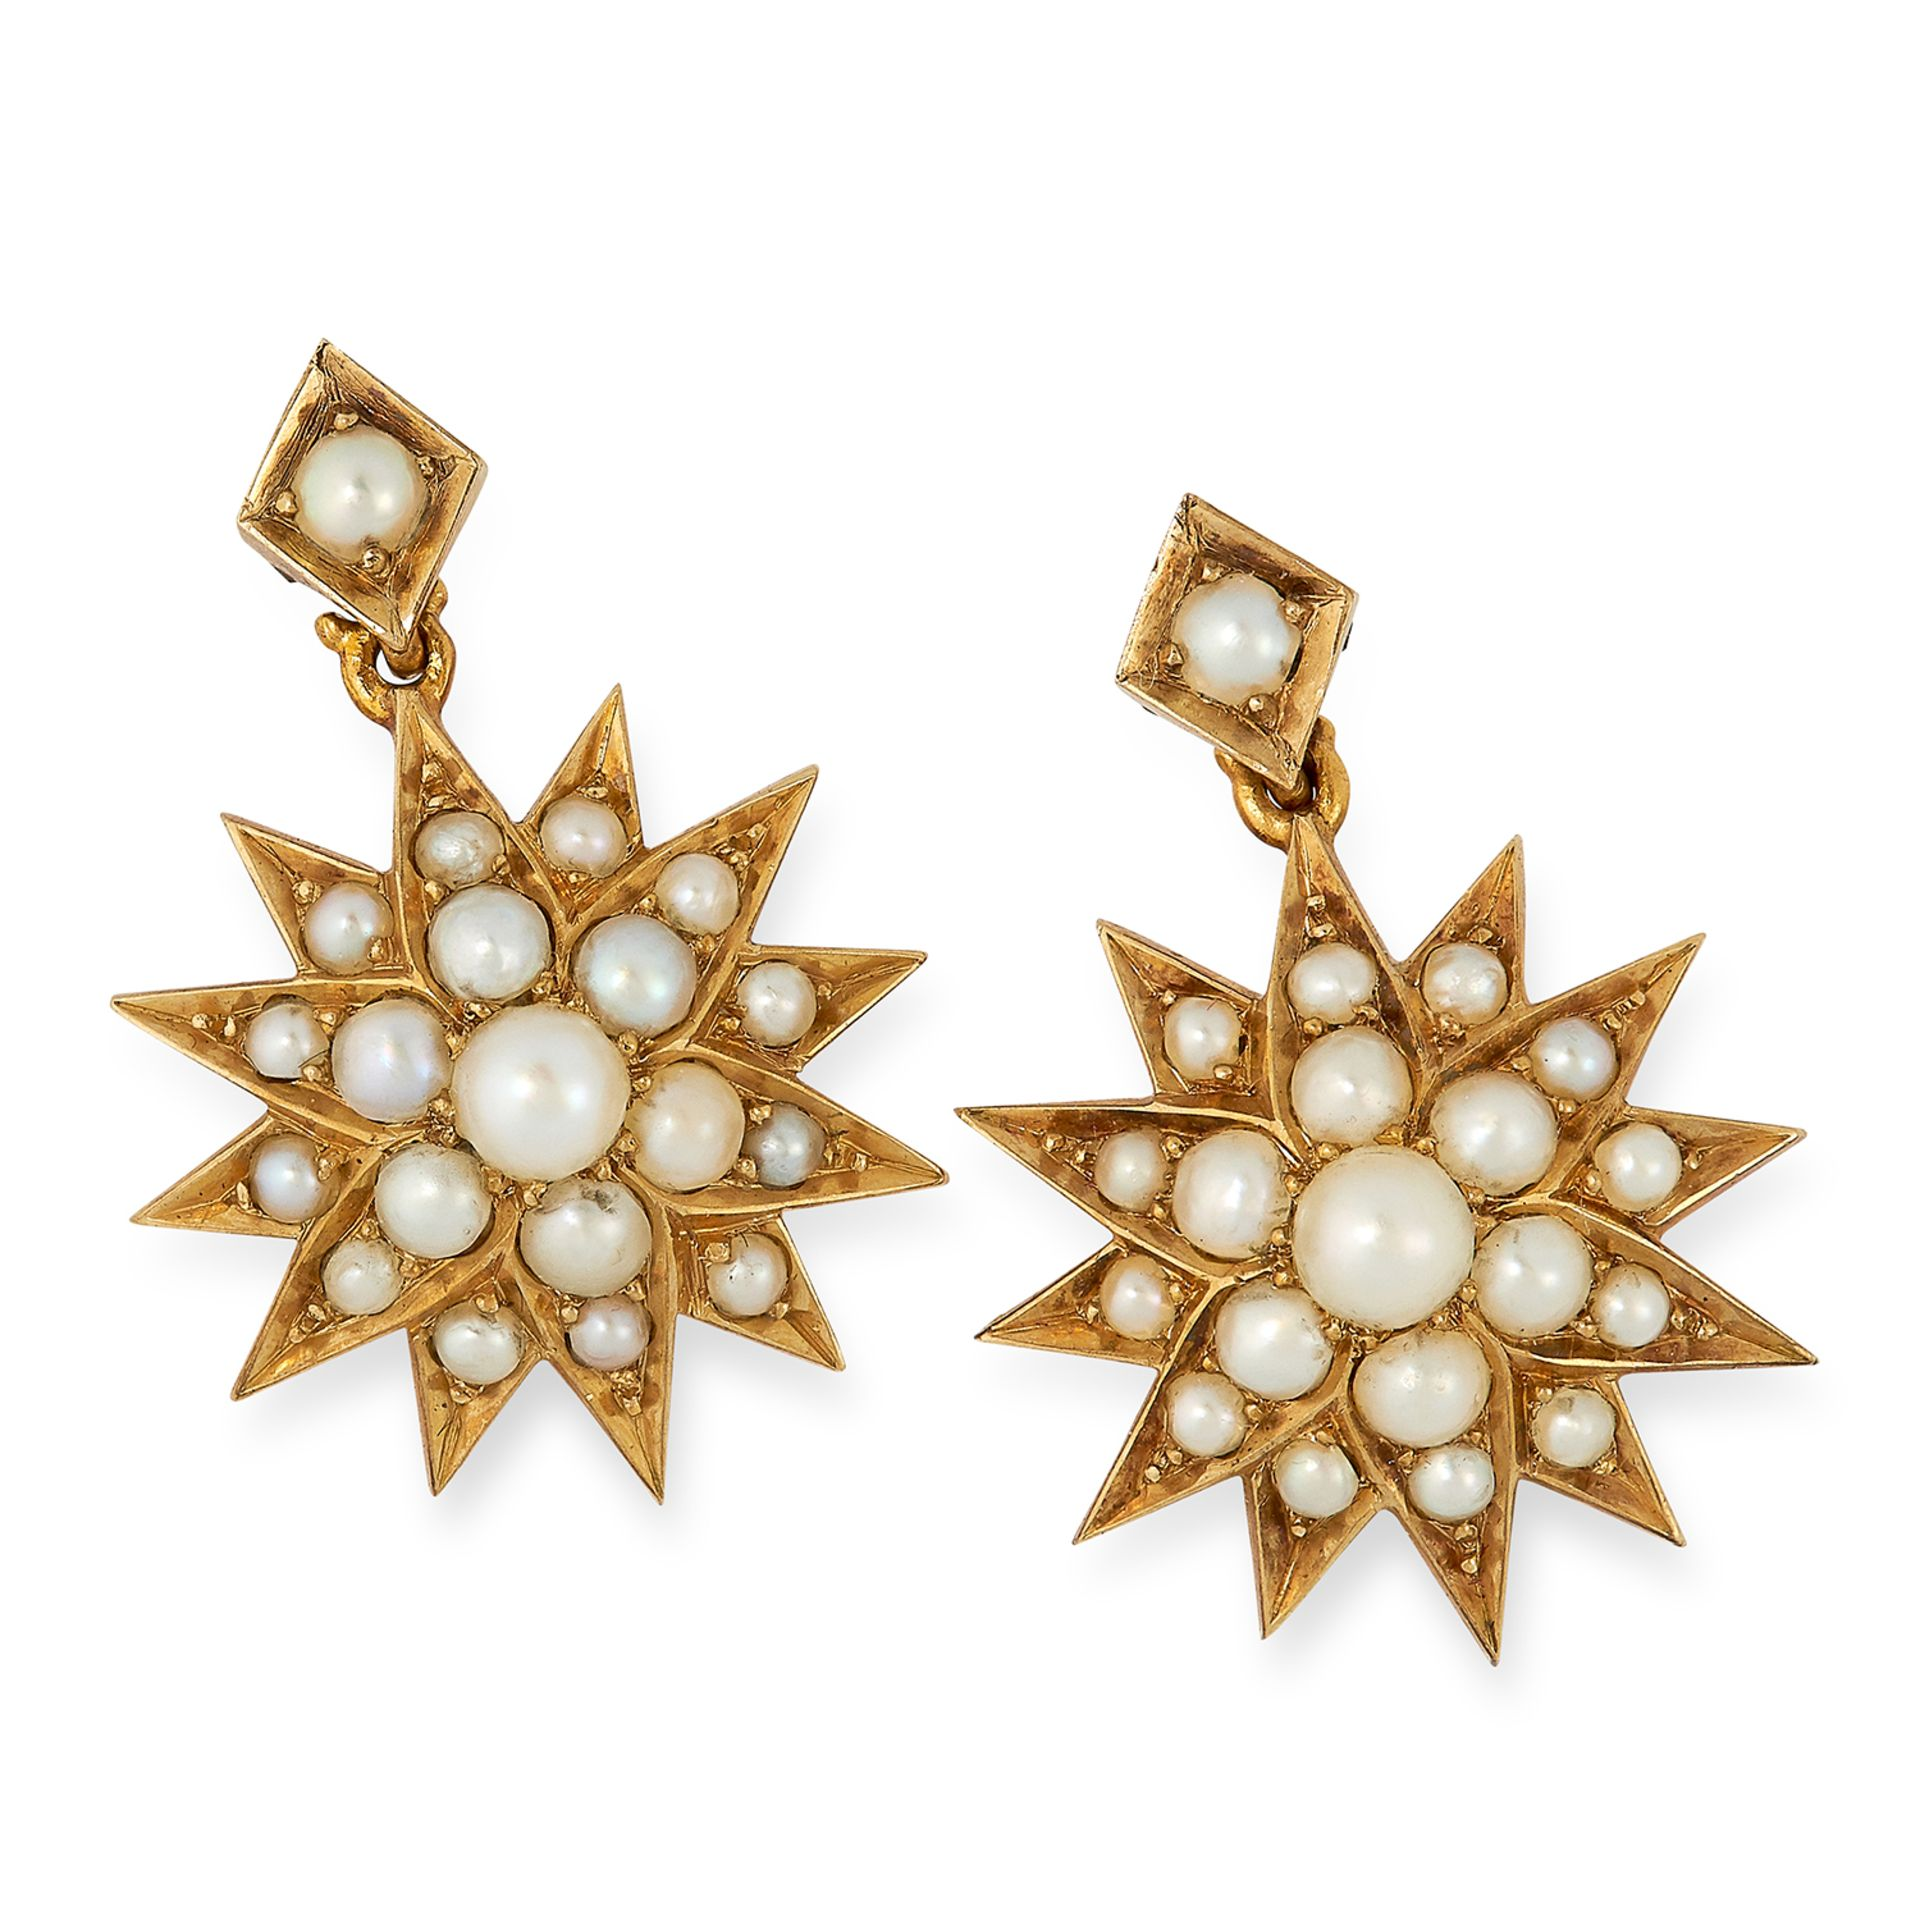 ANTIQUE PEARL EARRINGS designed as a star set with seed pearls, 2.3cm, 4.7g.